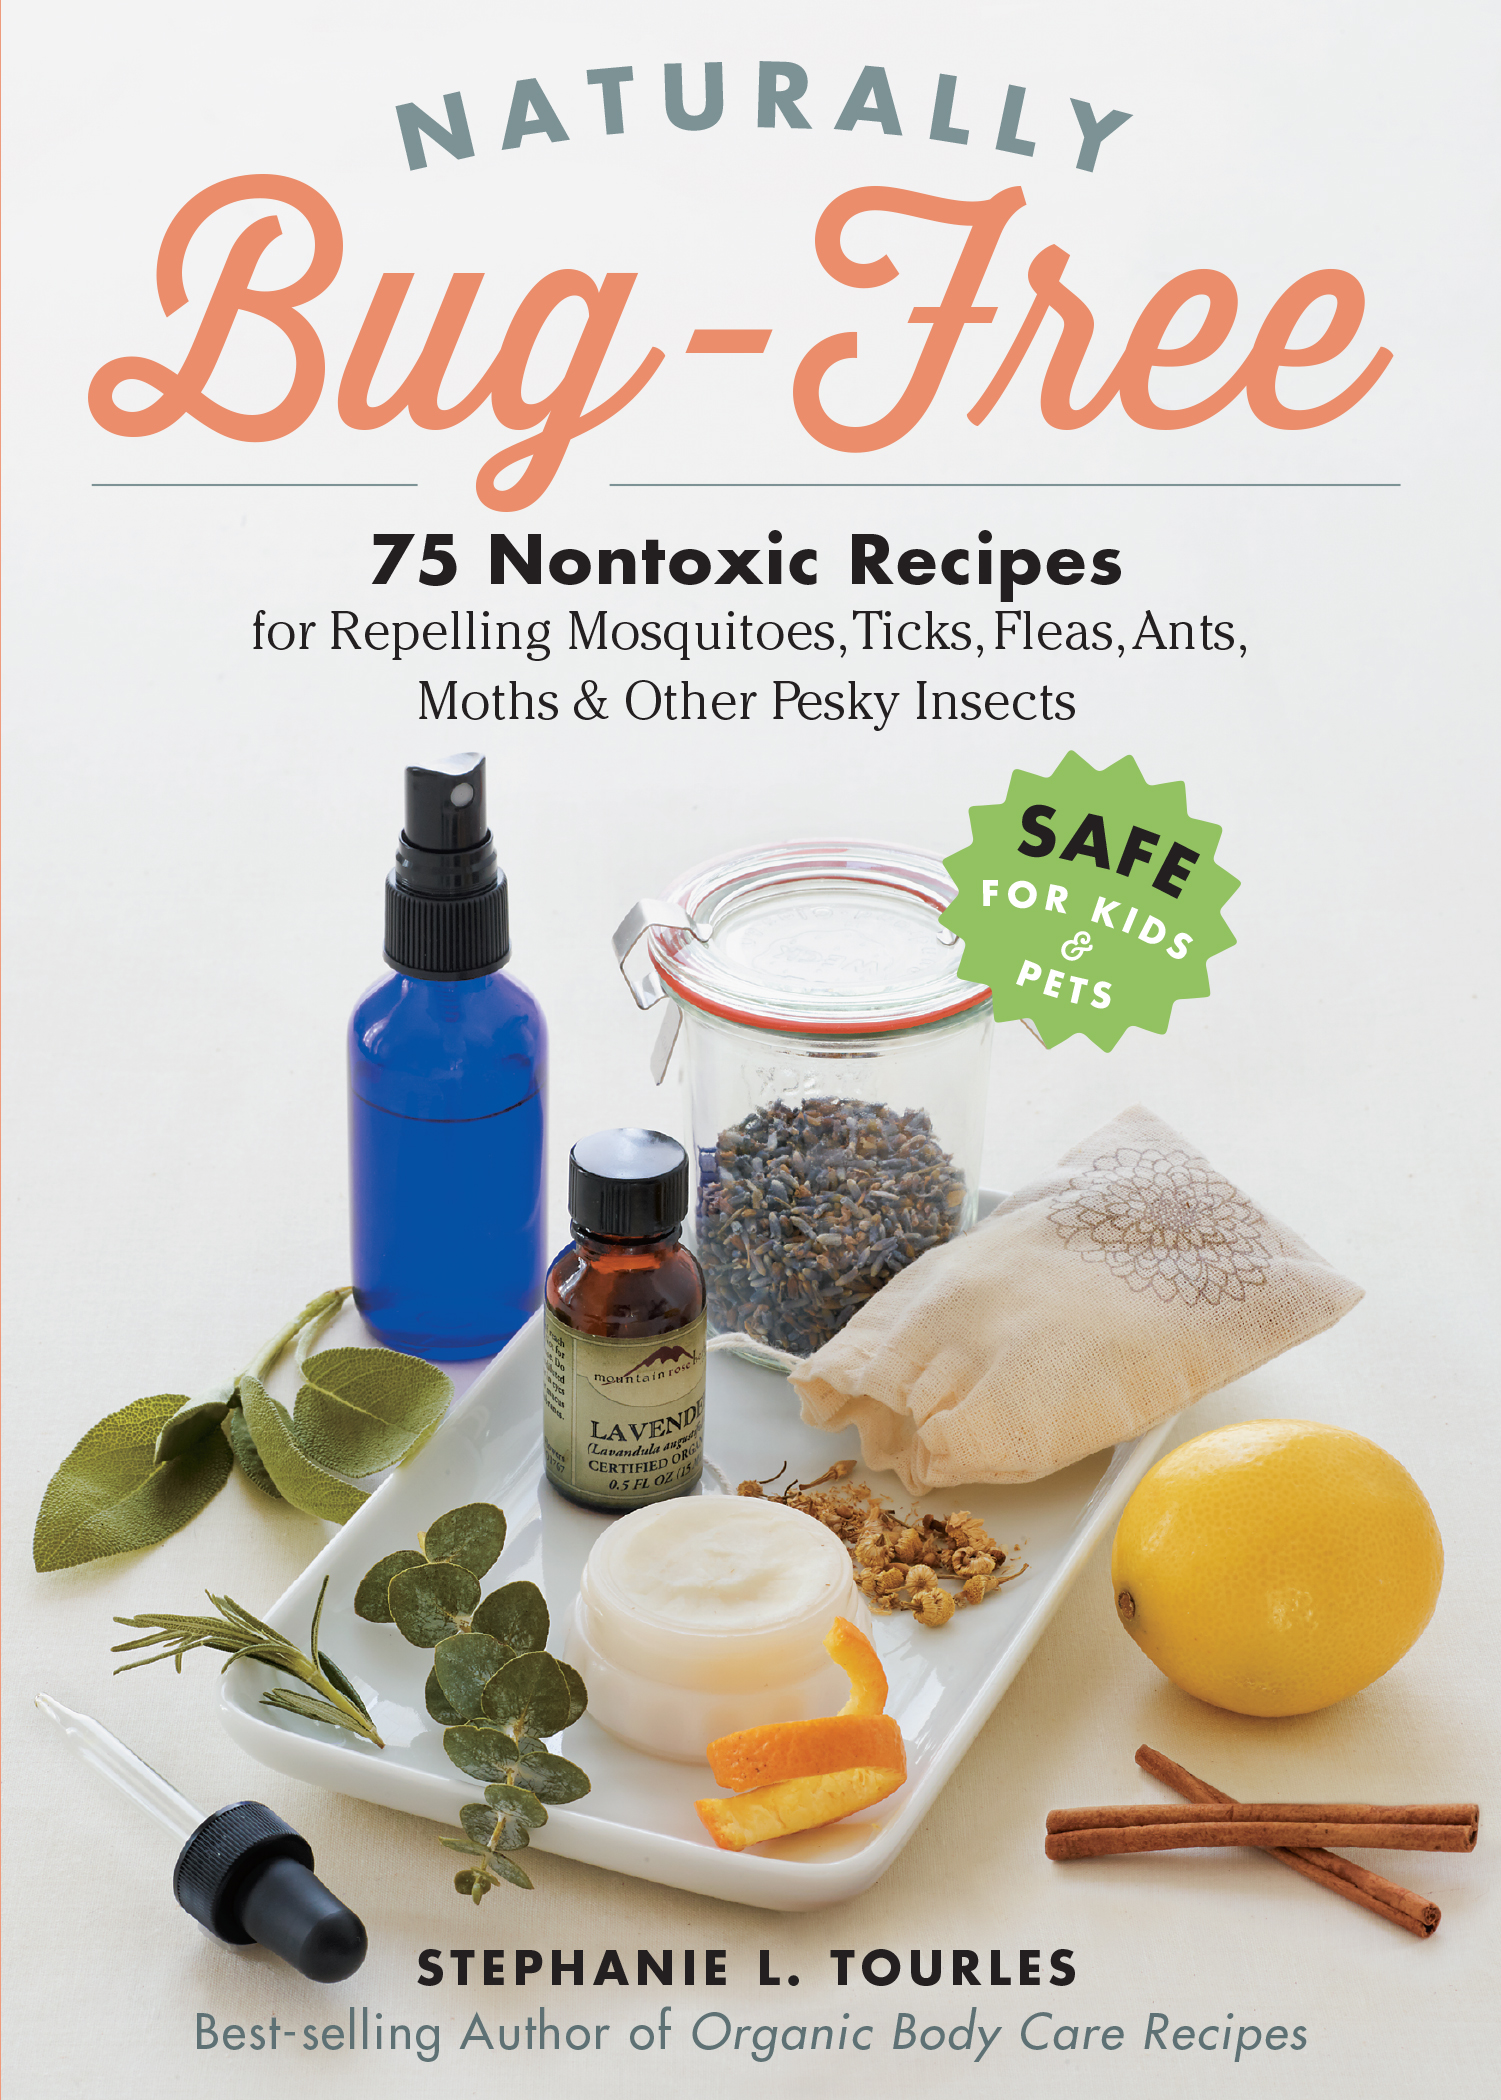 Naturally Bug-Free 75 Nontoxic Recipes for Repelling Mosquitoes, Ticks, Fleas, Ants, Moths & Other Pesky Insects - Stephanie L. Tourles